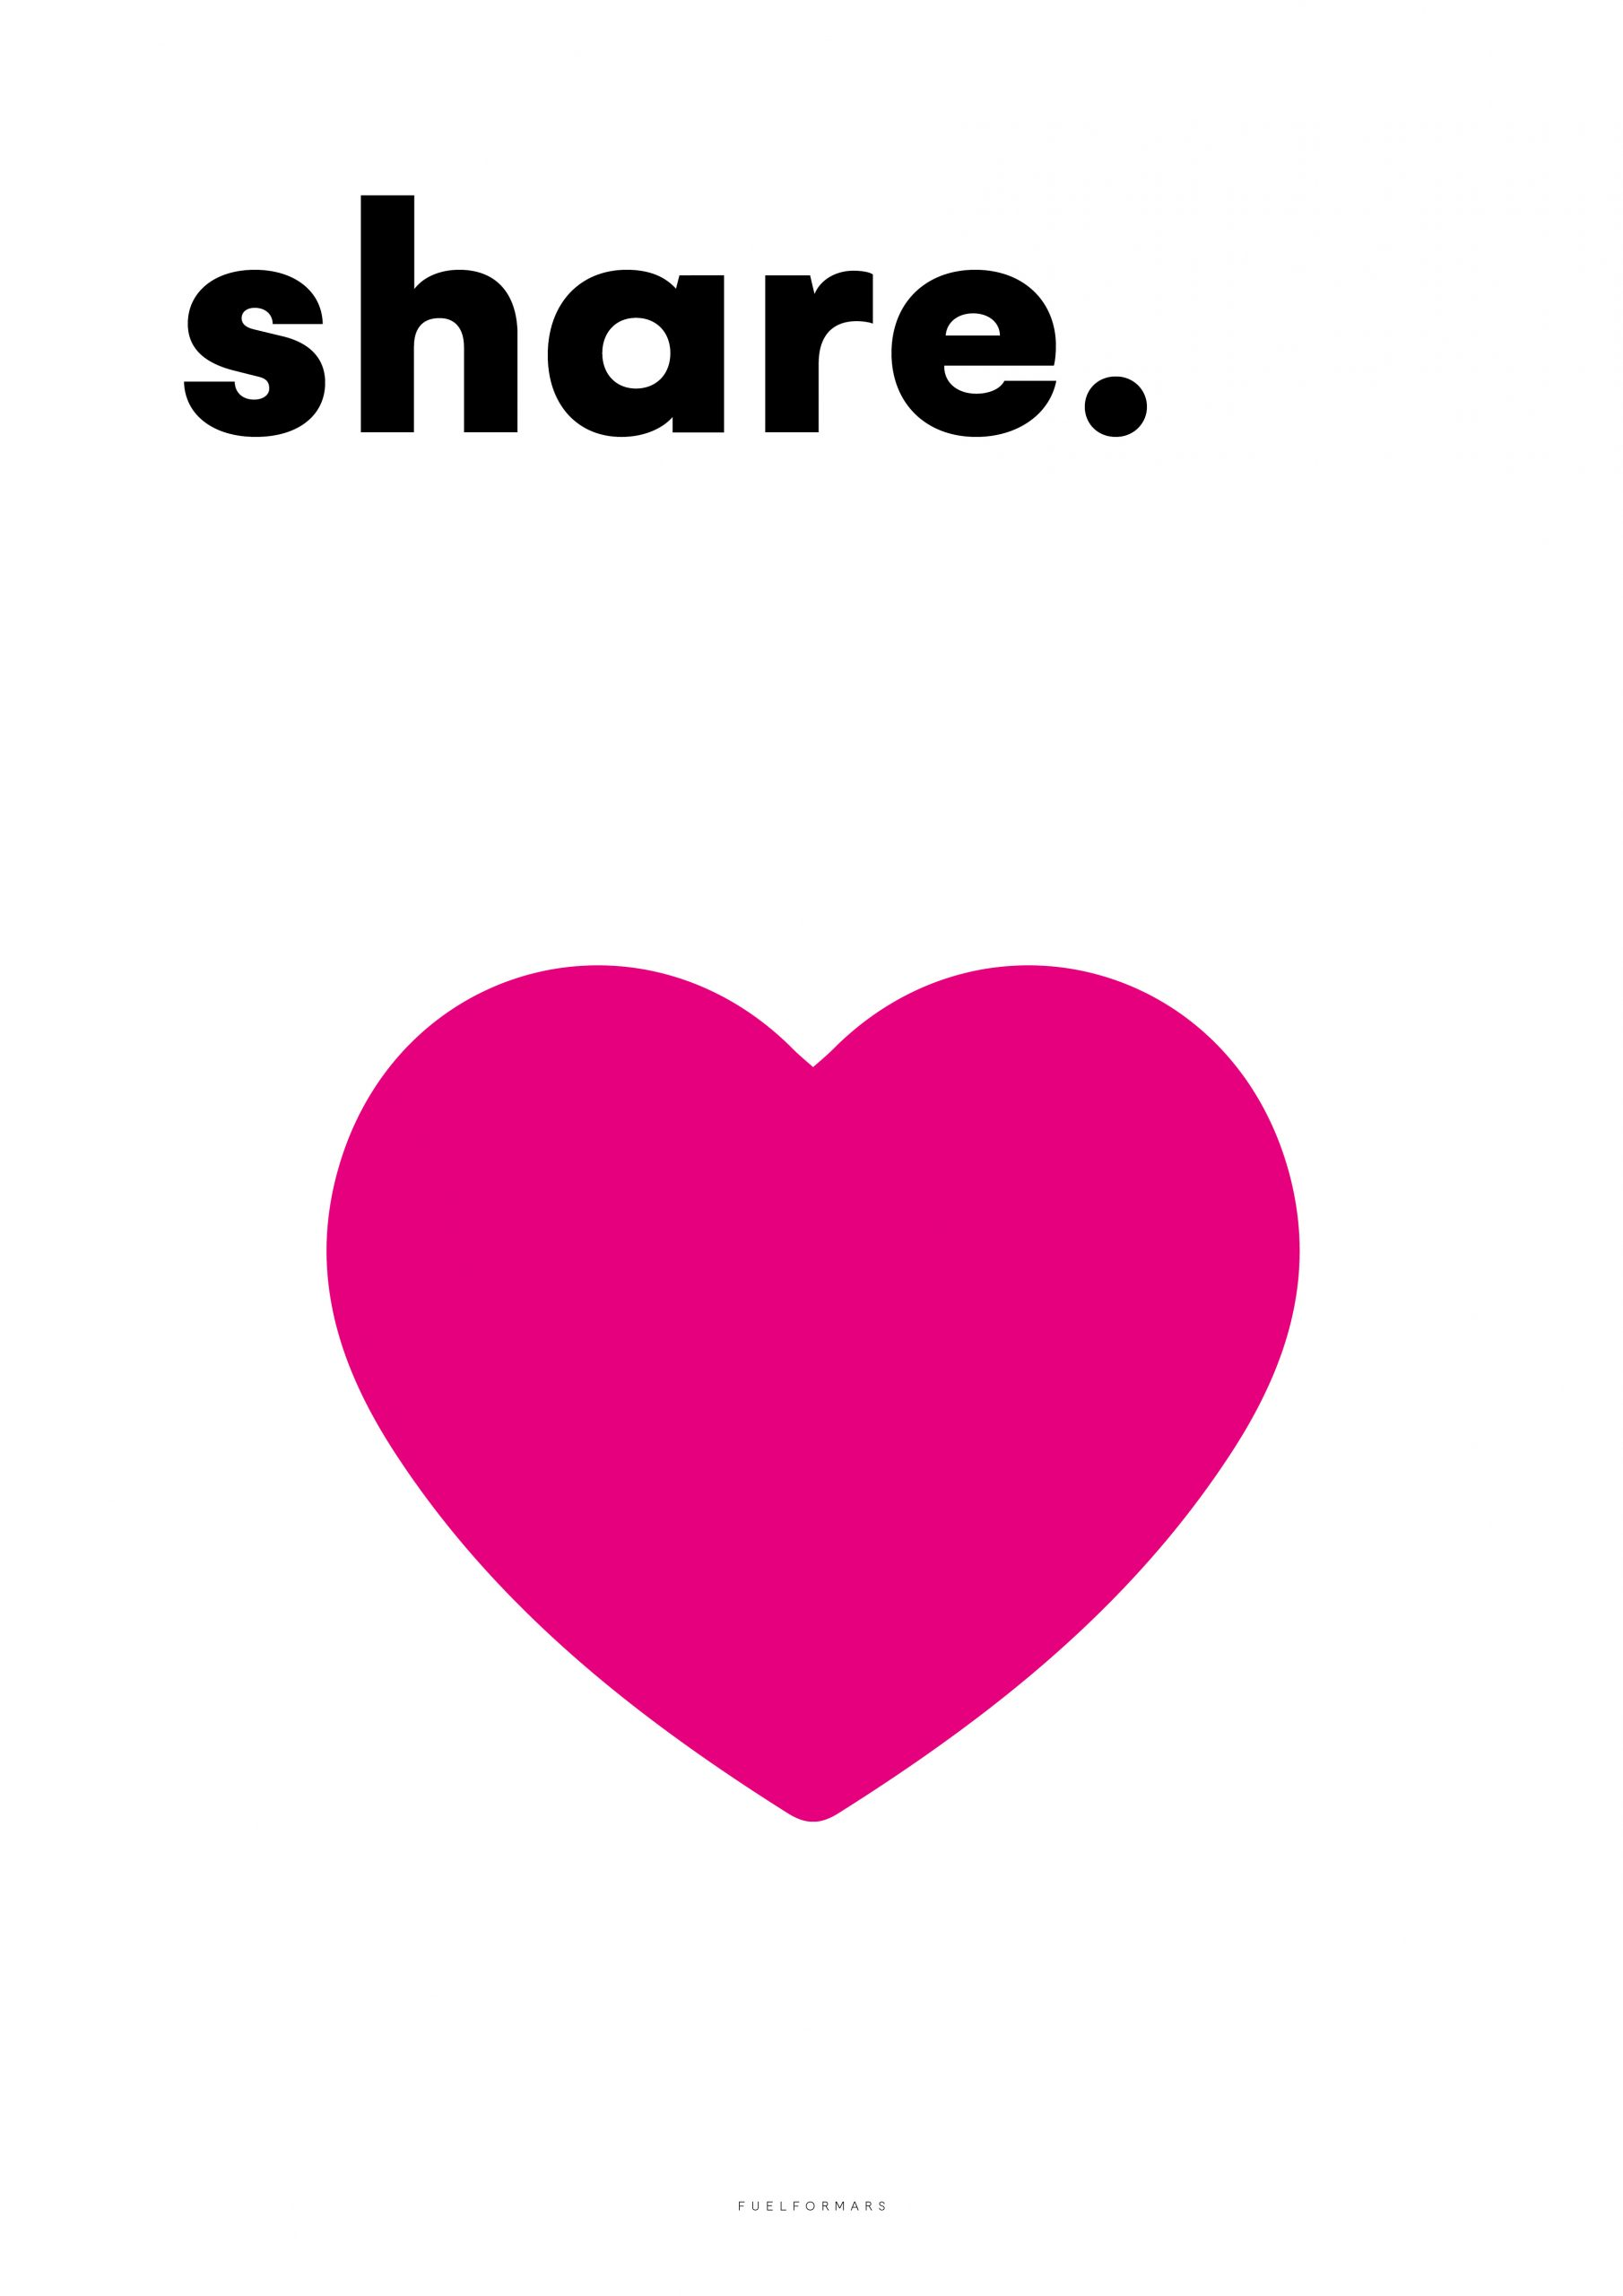 we see a pink heart with the word share from fuel for mars